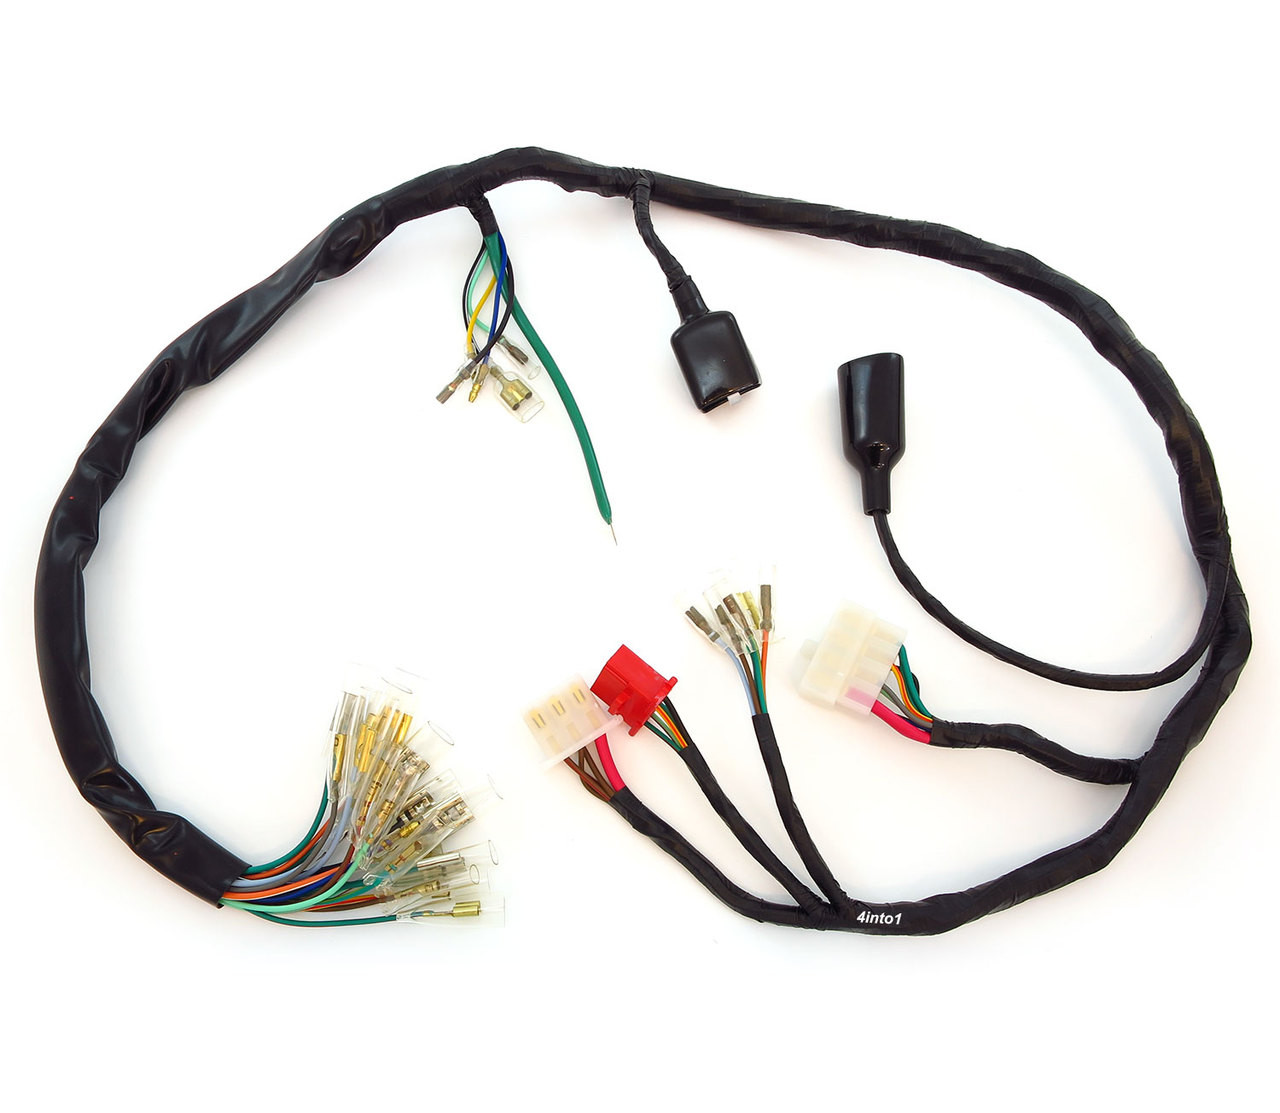 medium resolution of  honda ct90 wiring harness wiring diagram on honda ct90 parts diagram honda ct90 cylinder